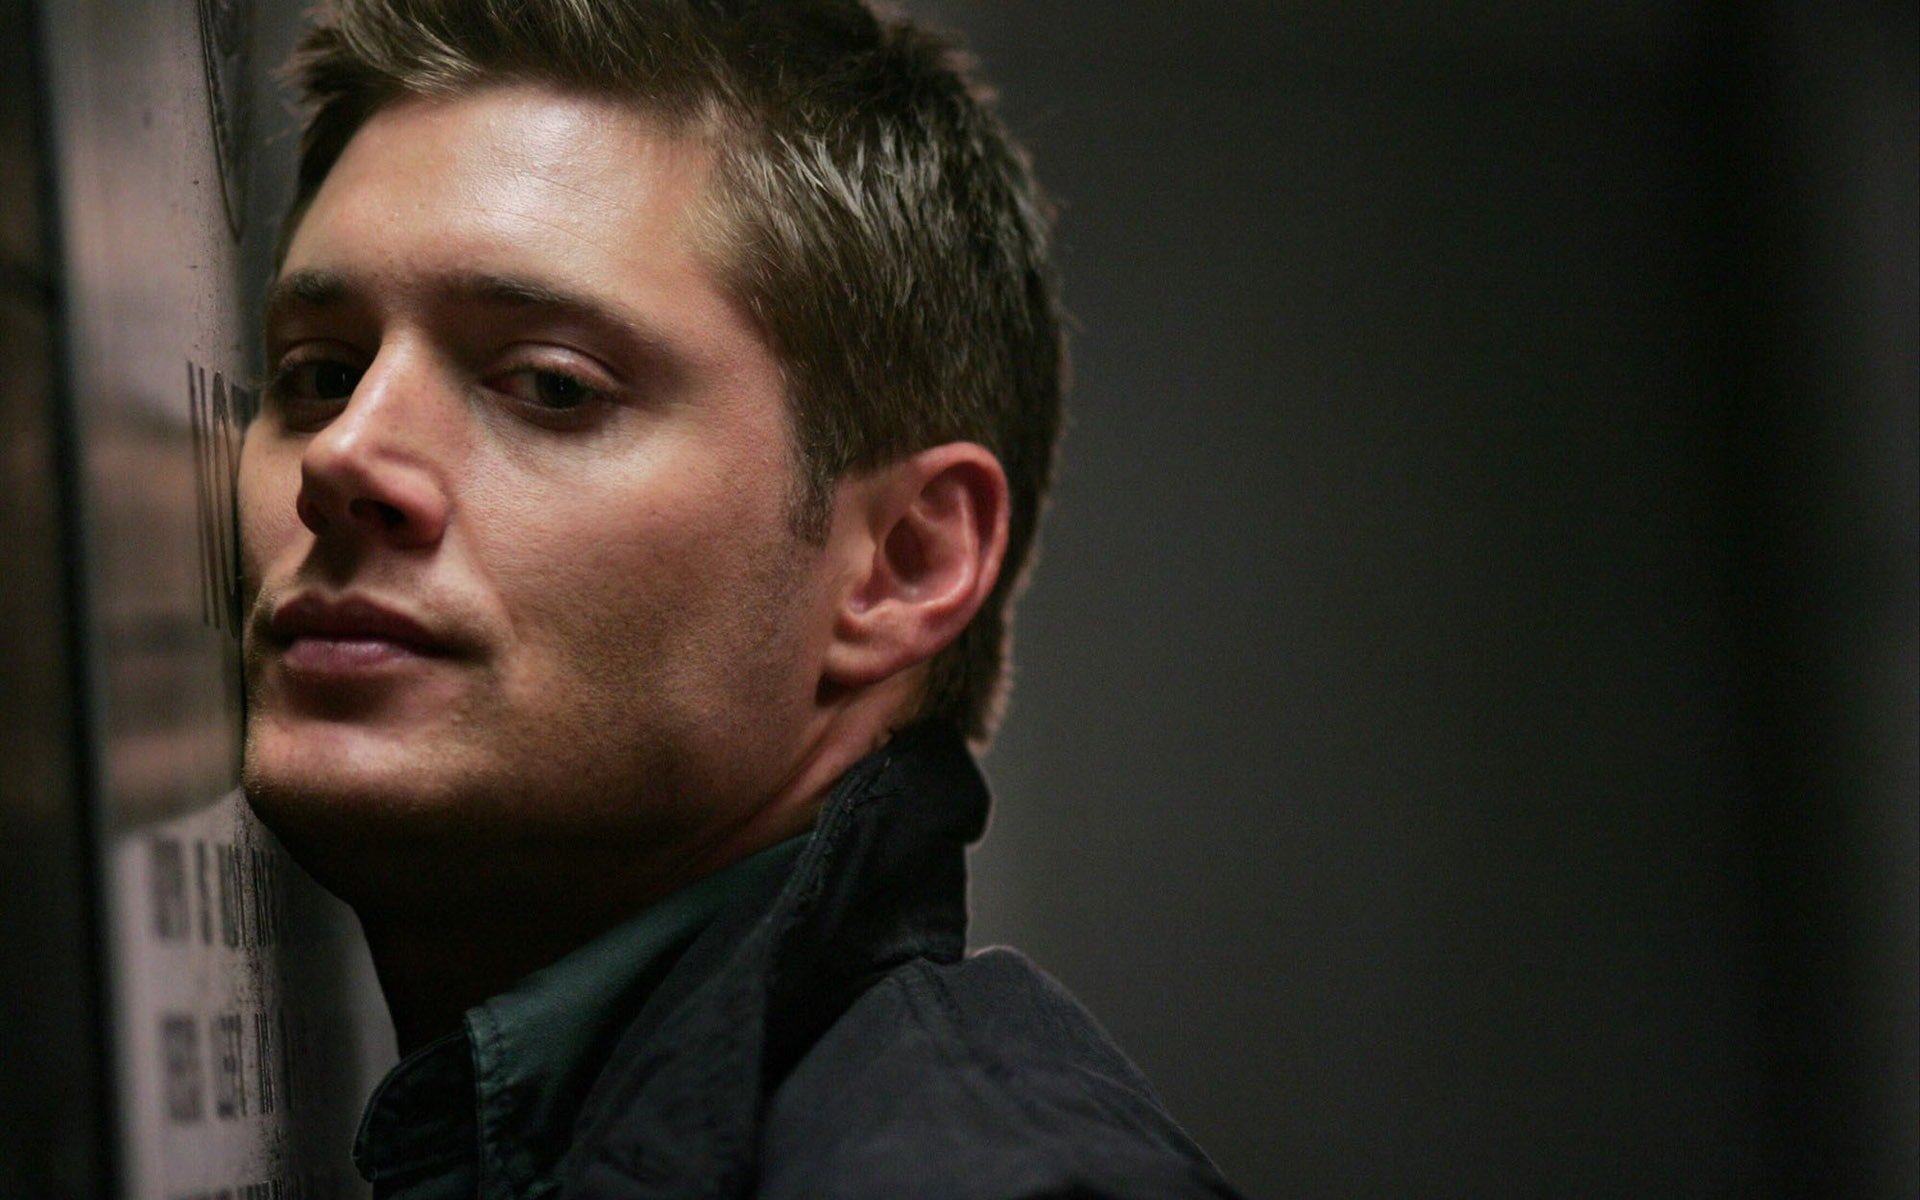 Jensen Ackles HD Wallpapers | 7wallpapers.net